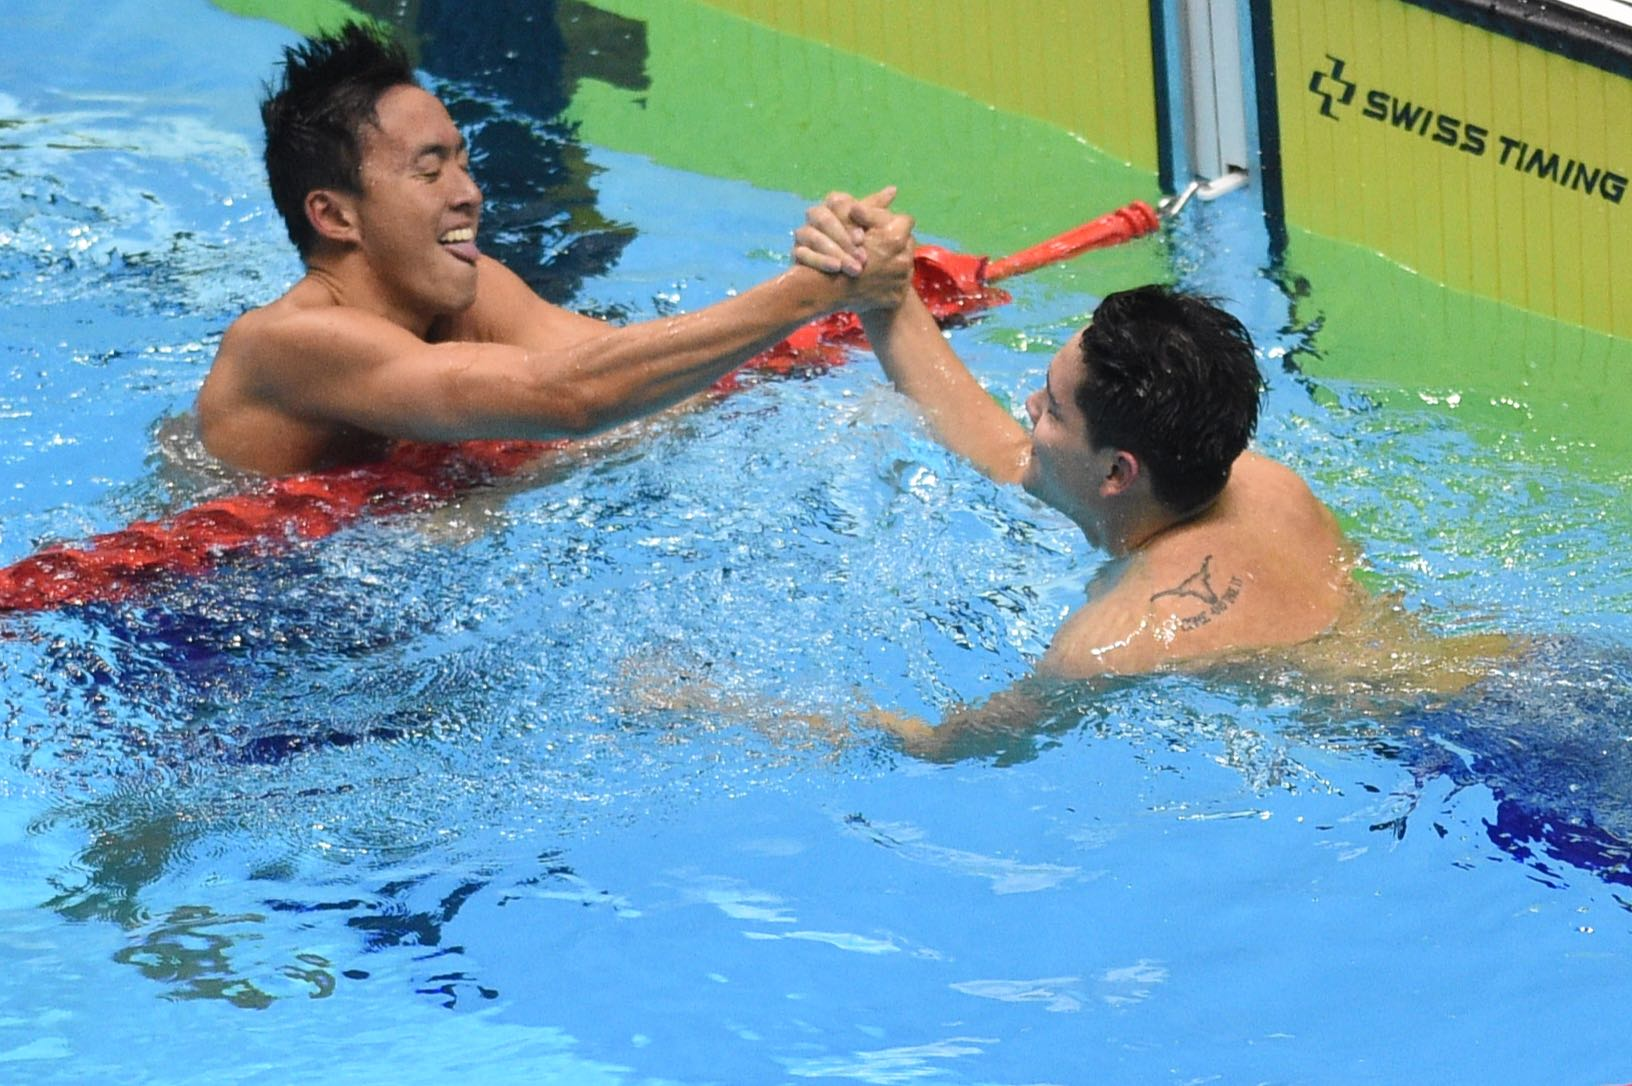 Singapore's Joseph Schooling (R) celebrates with compatriot Zhen Wen (L) after winning the men's 100m swimming butterfly during the SEA Games (Southeast Asian Games) at the Aquatic center in Clark, Capas, Tarlac province, north of Manila on December 6, 2019.